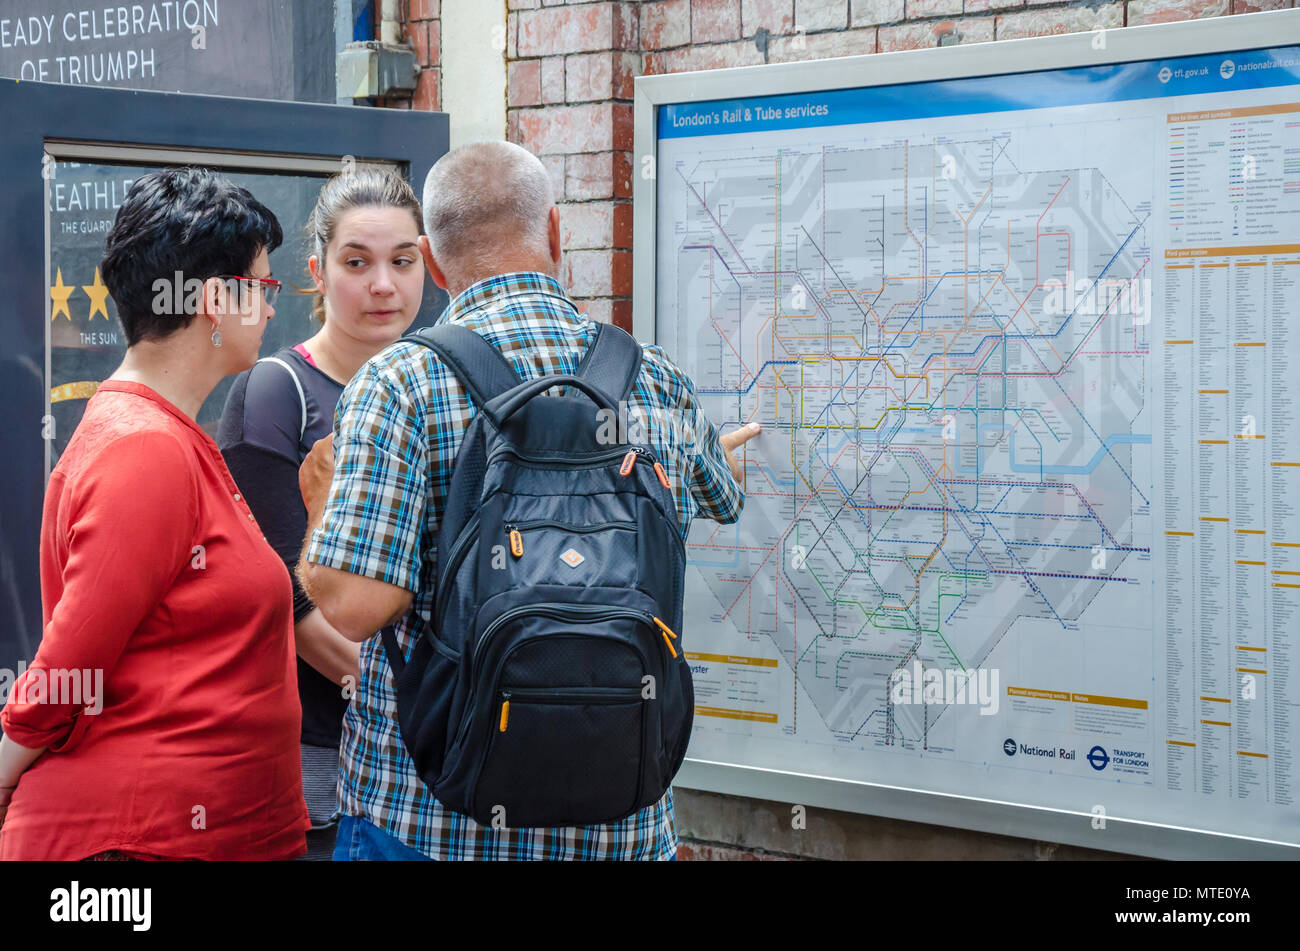 A family consult a map of The London underground at Hammersmith tube station to help navigate to their destination. - Stock Image